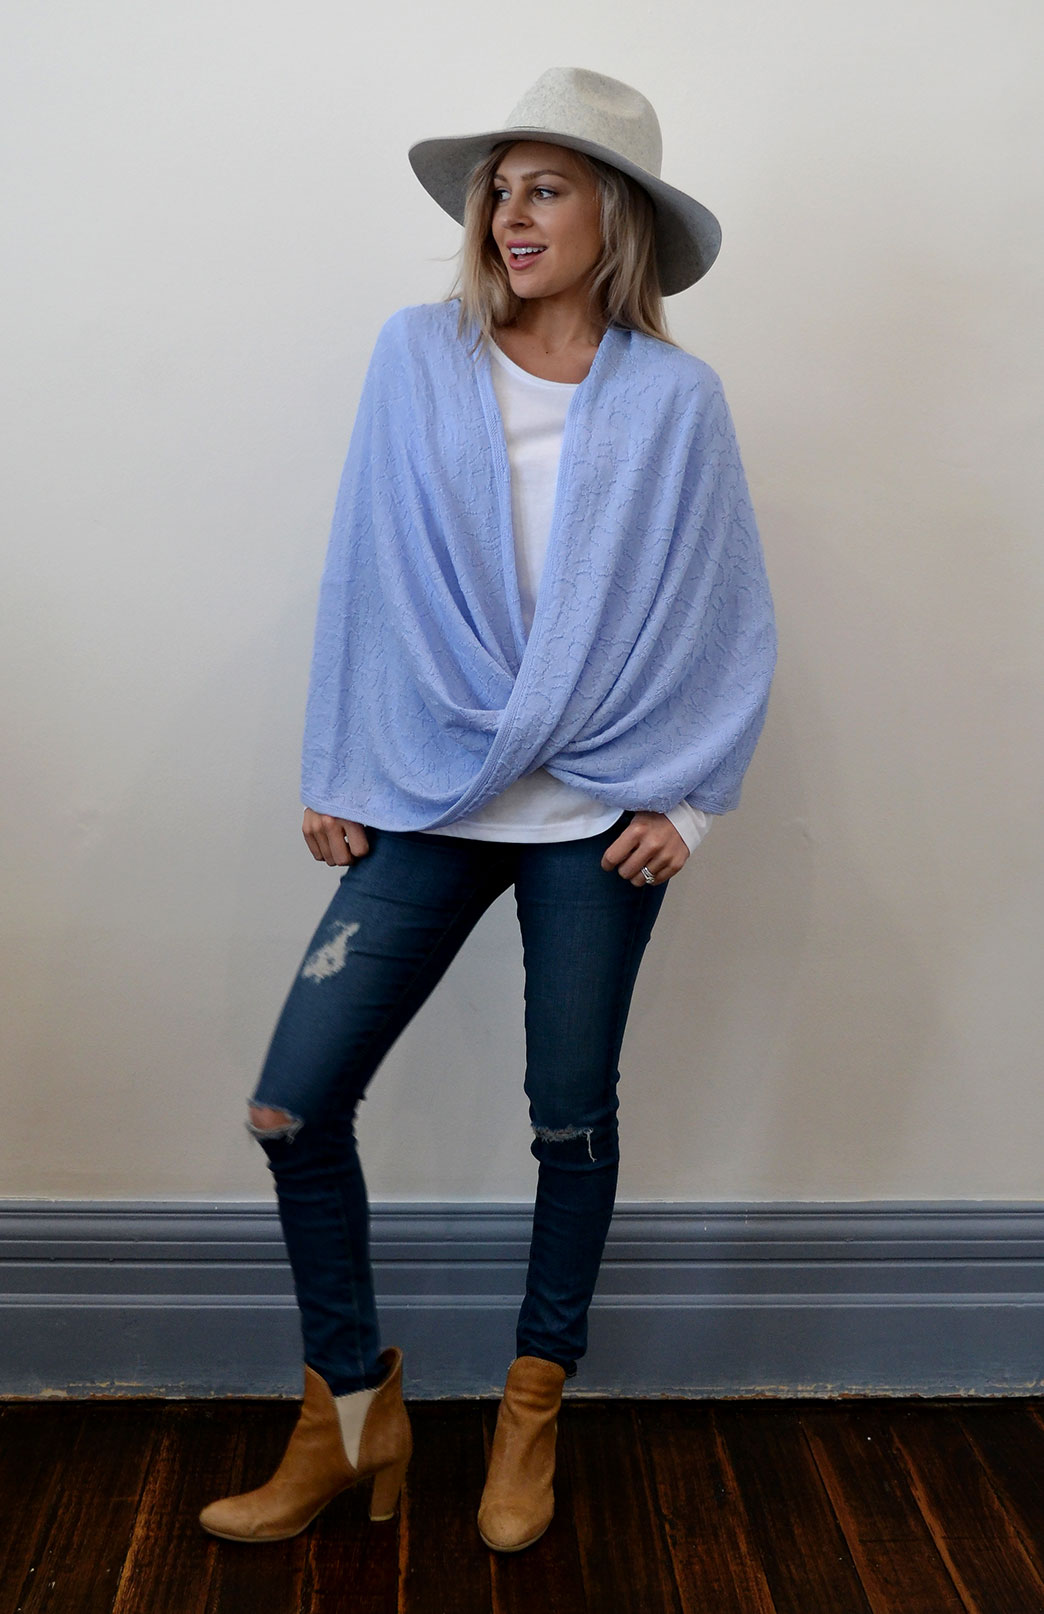 Merino Twisted Wrap - Women's Merino Wool Pale Blue Twisted Wrap and Classic Shrug - Smitten Merino Tasmania Australia